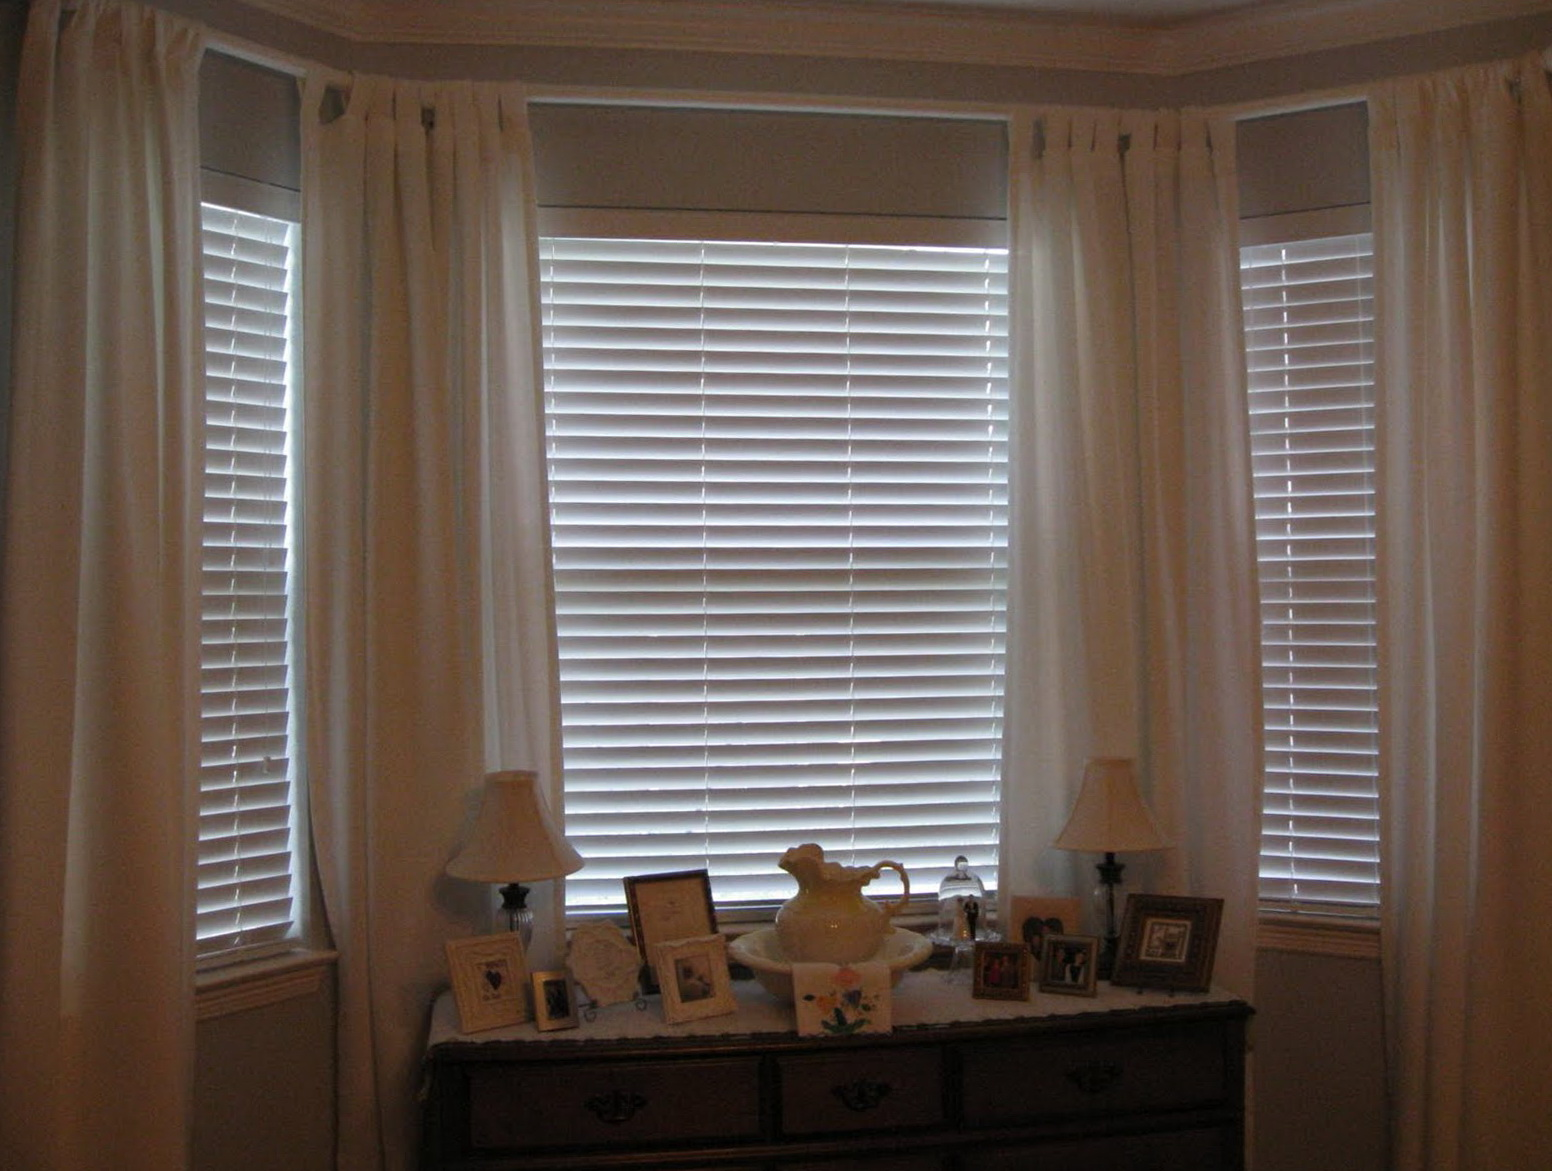 Curved Curtain Rods For Bow Windows Home Design Ideas